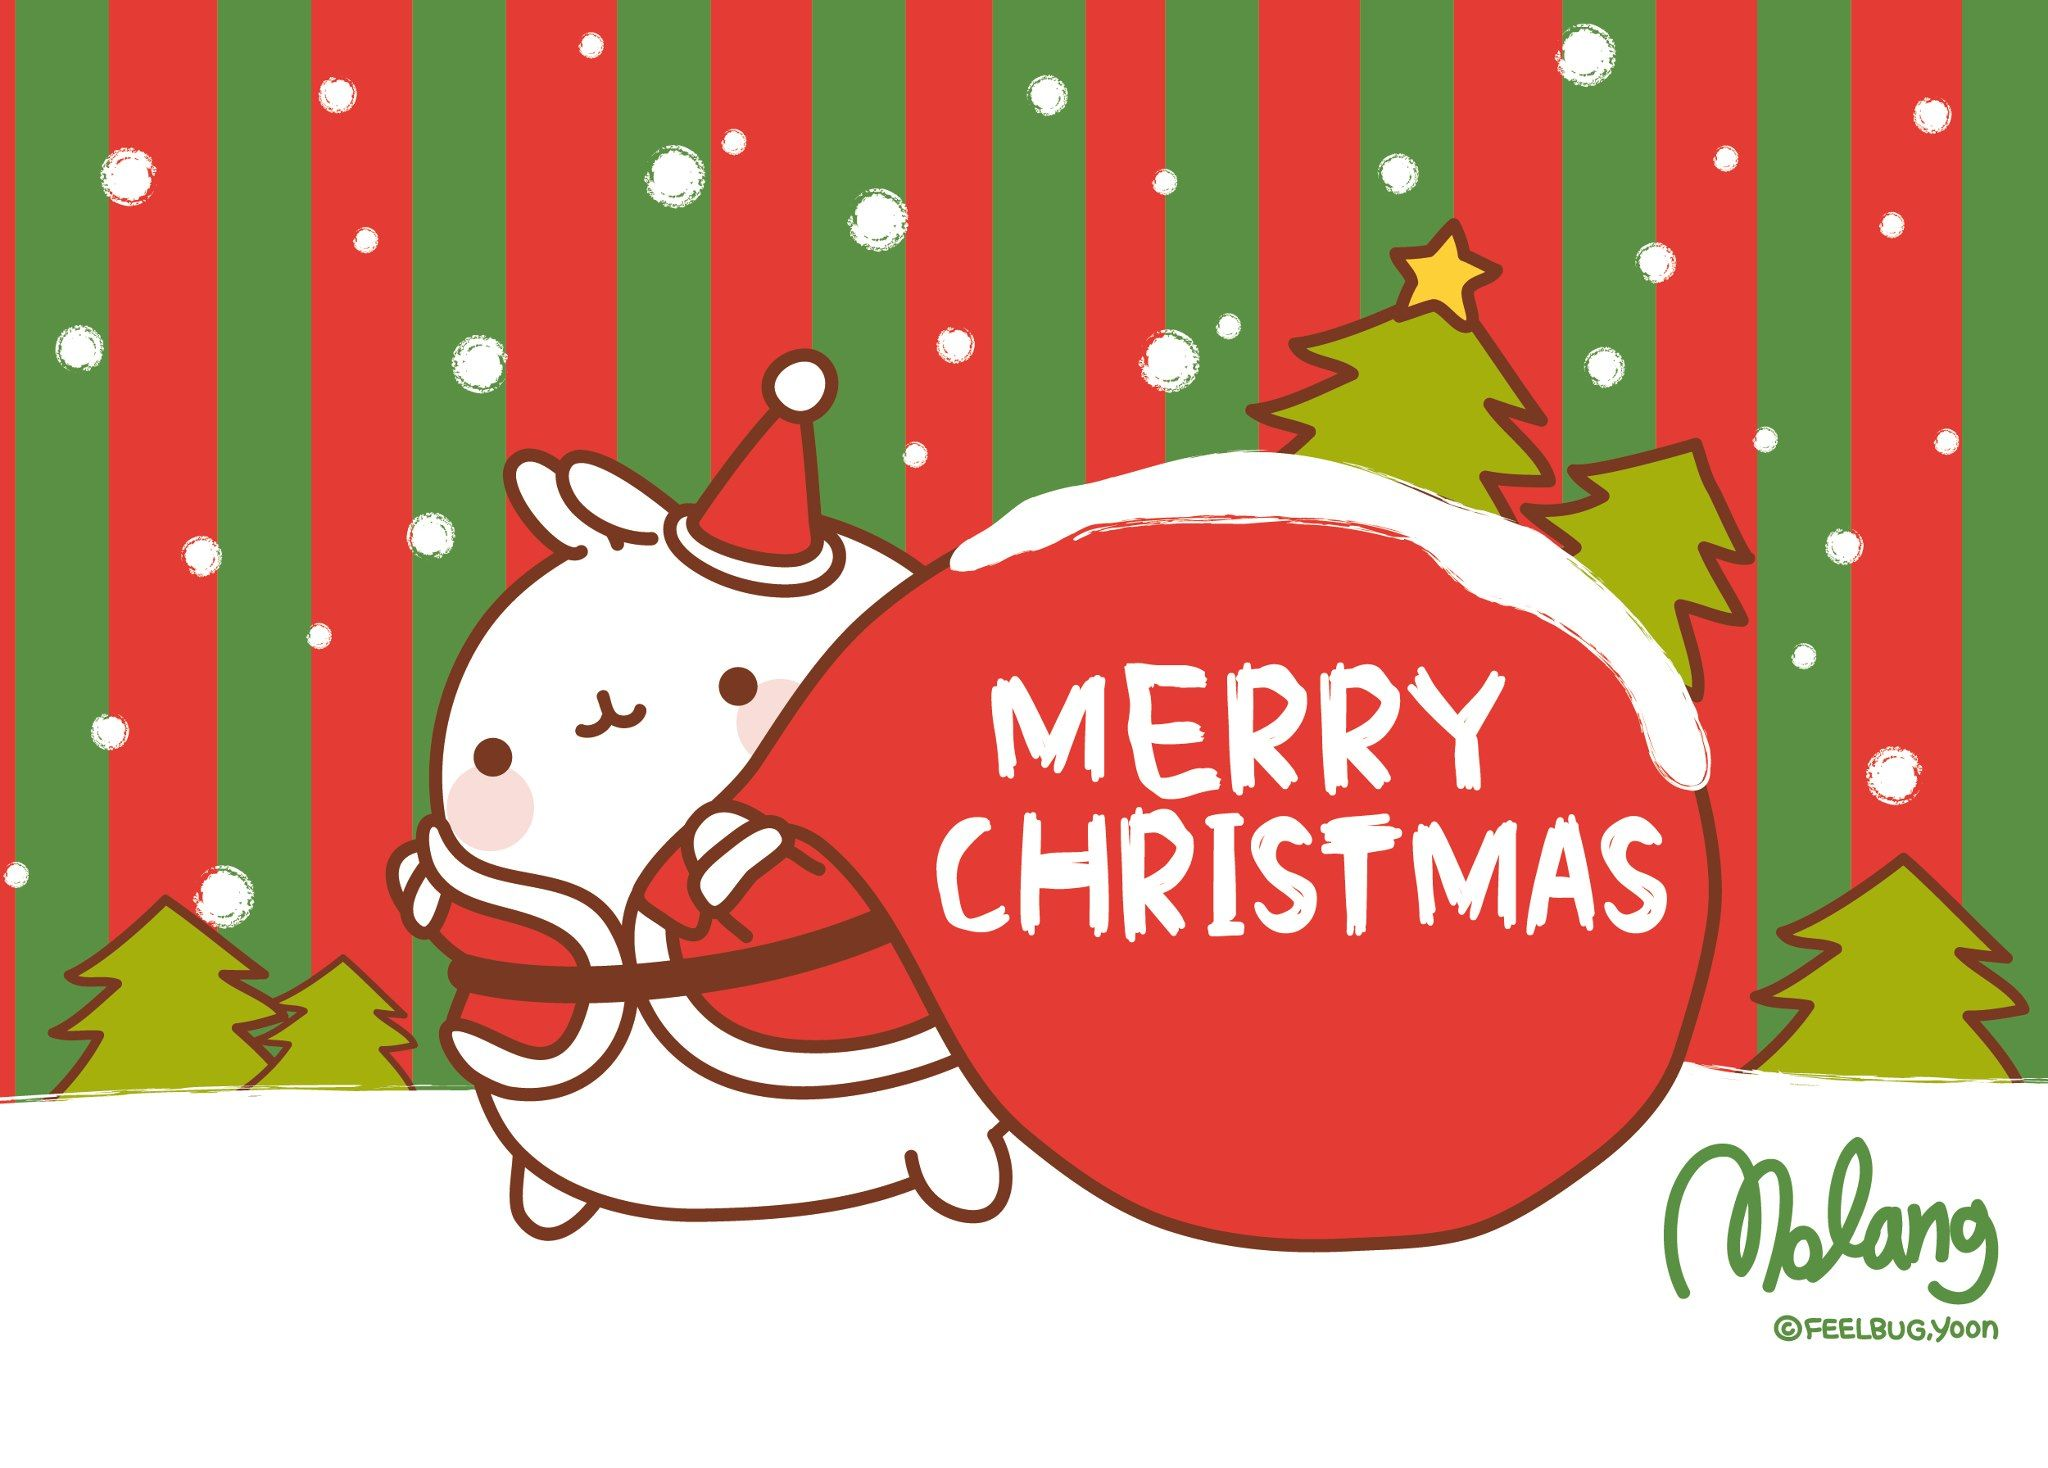 Merry Christmas, by Molang